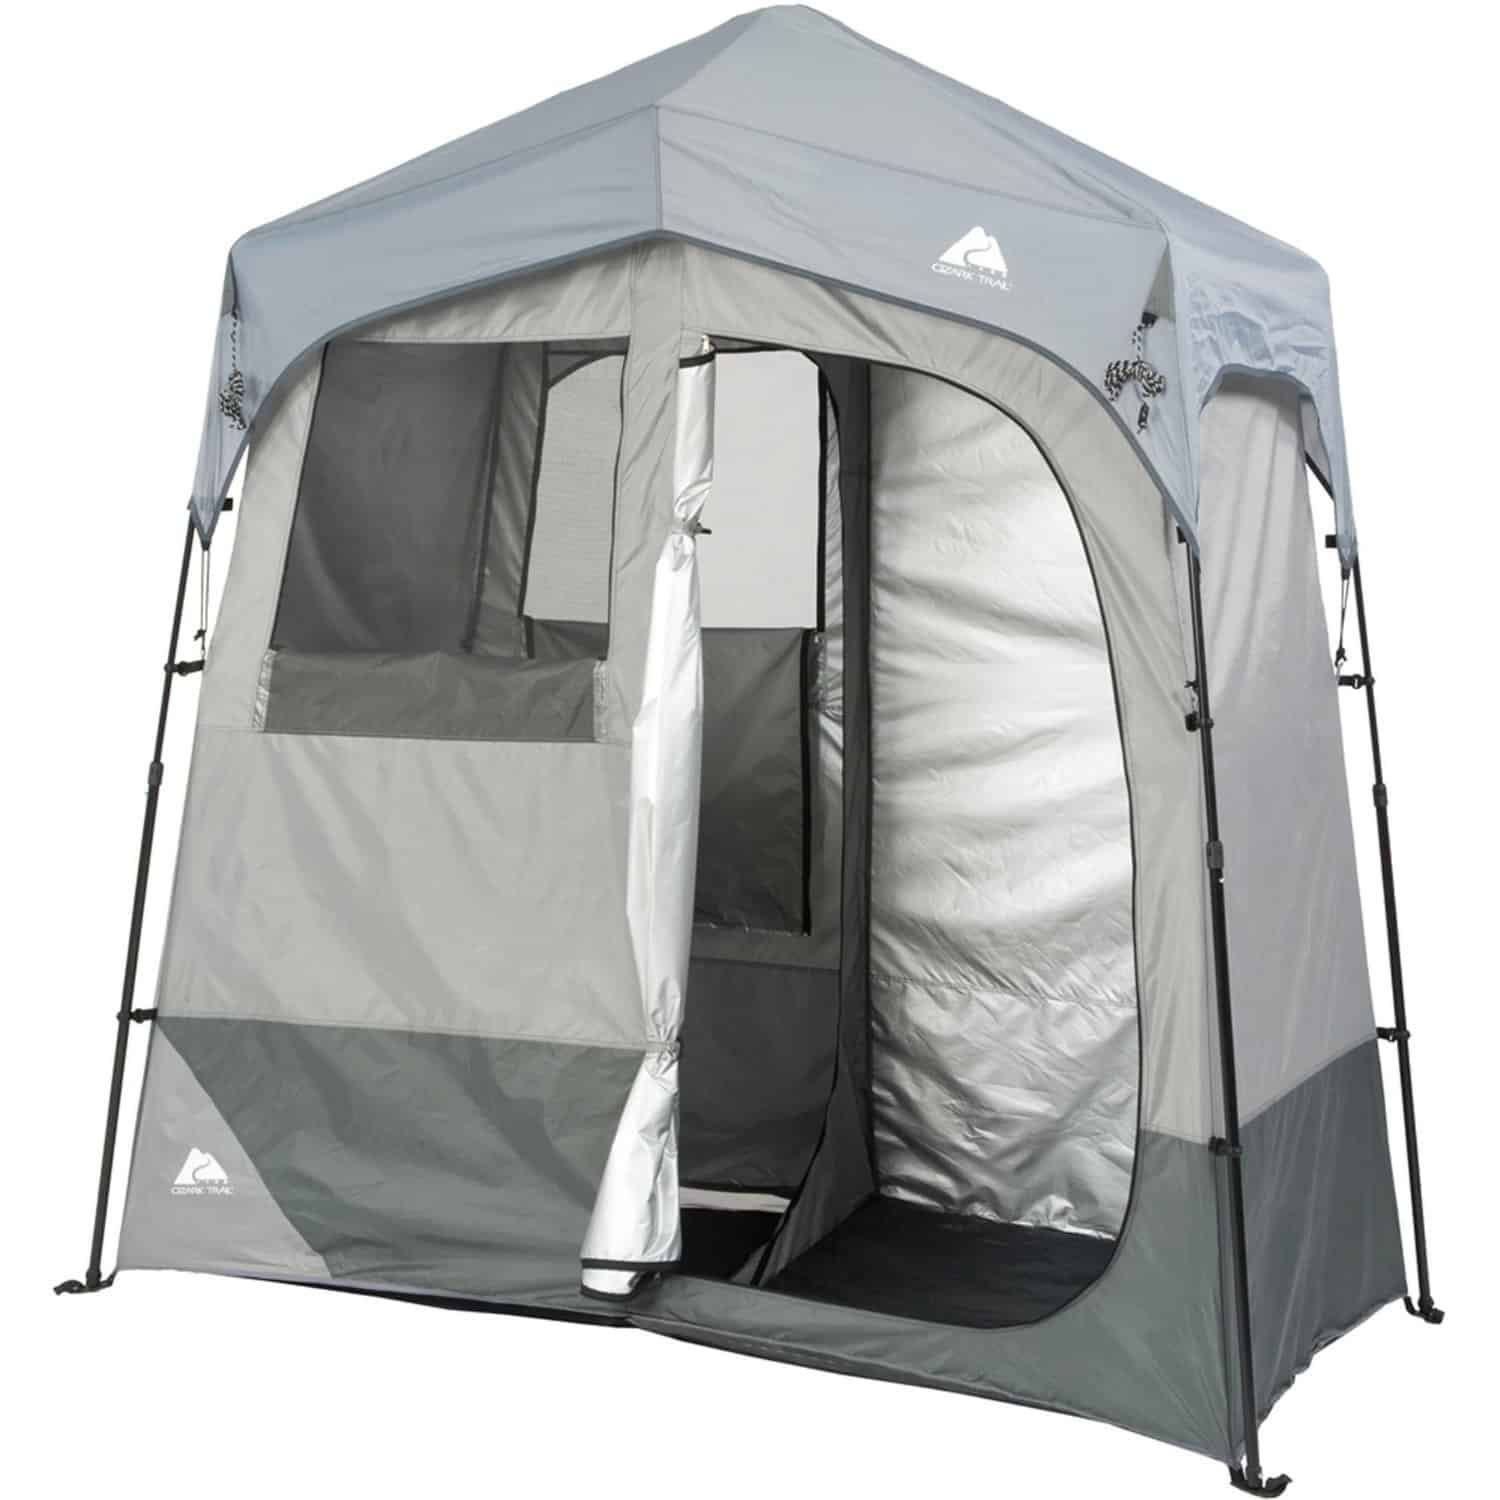 Ozark trail instant 2 room shower:changing shelter